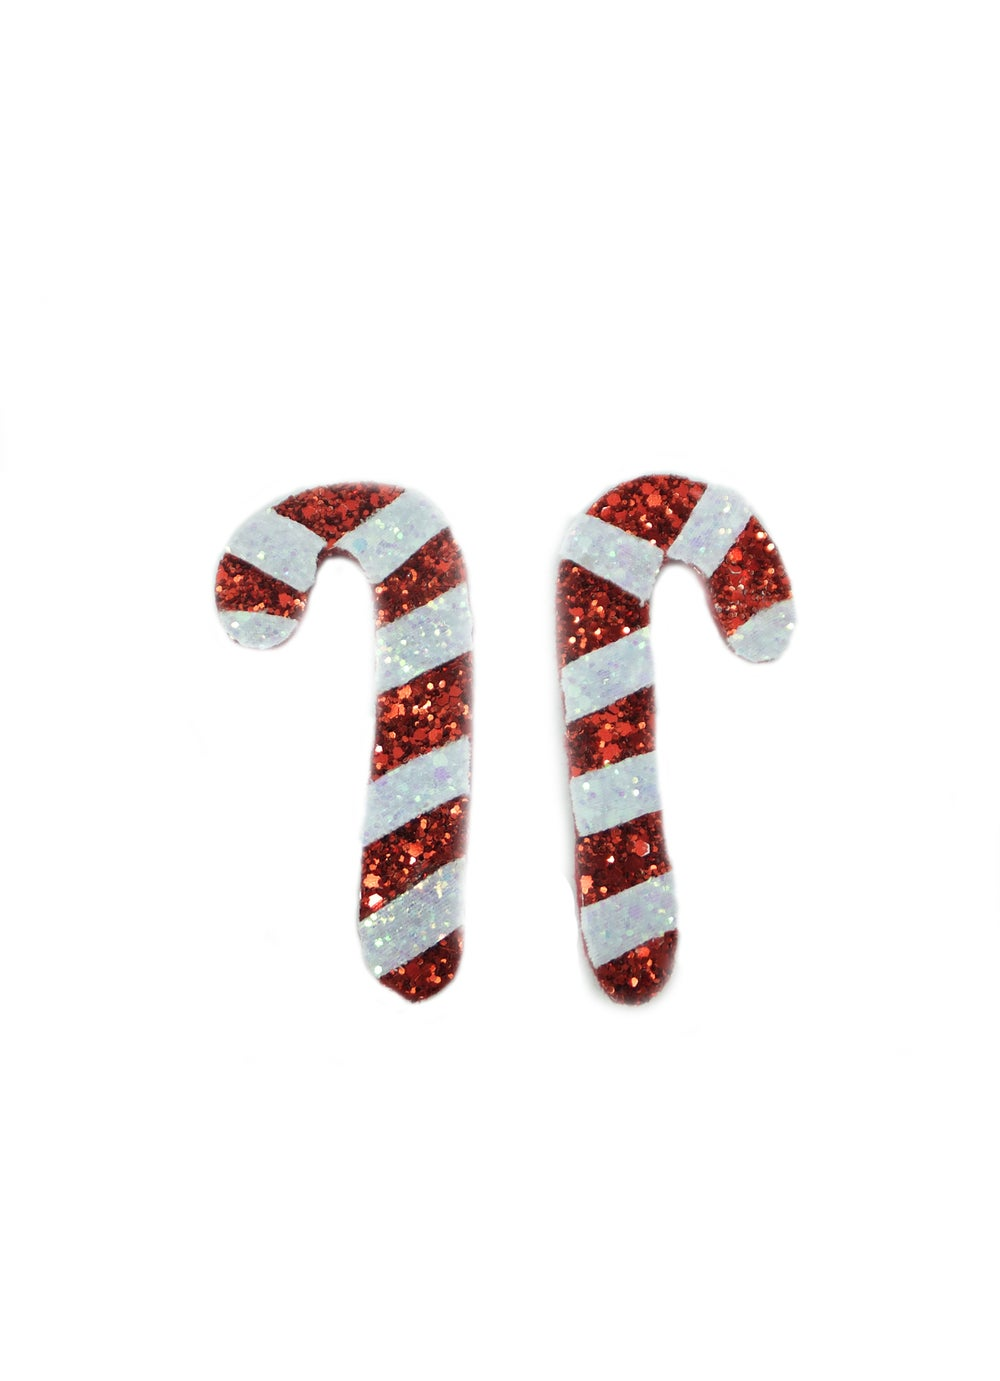 Image of Candy Cane Hair Clips - Pair